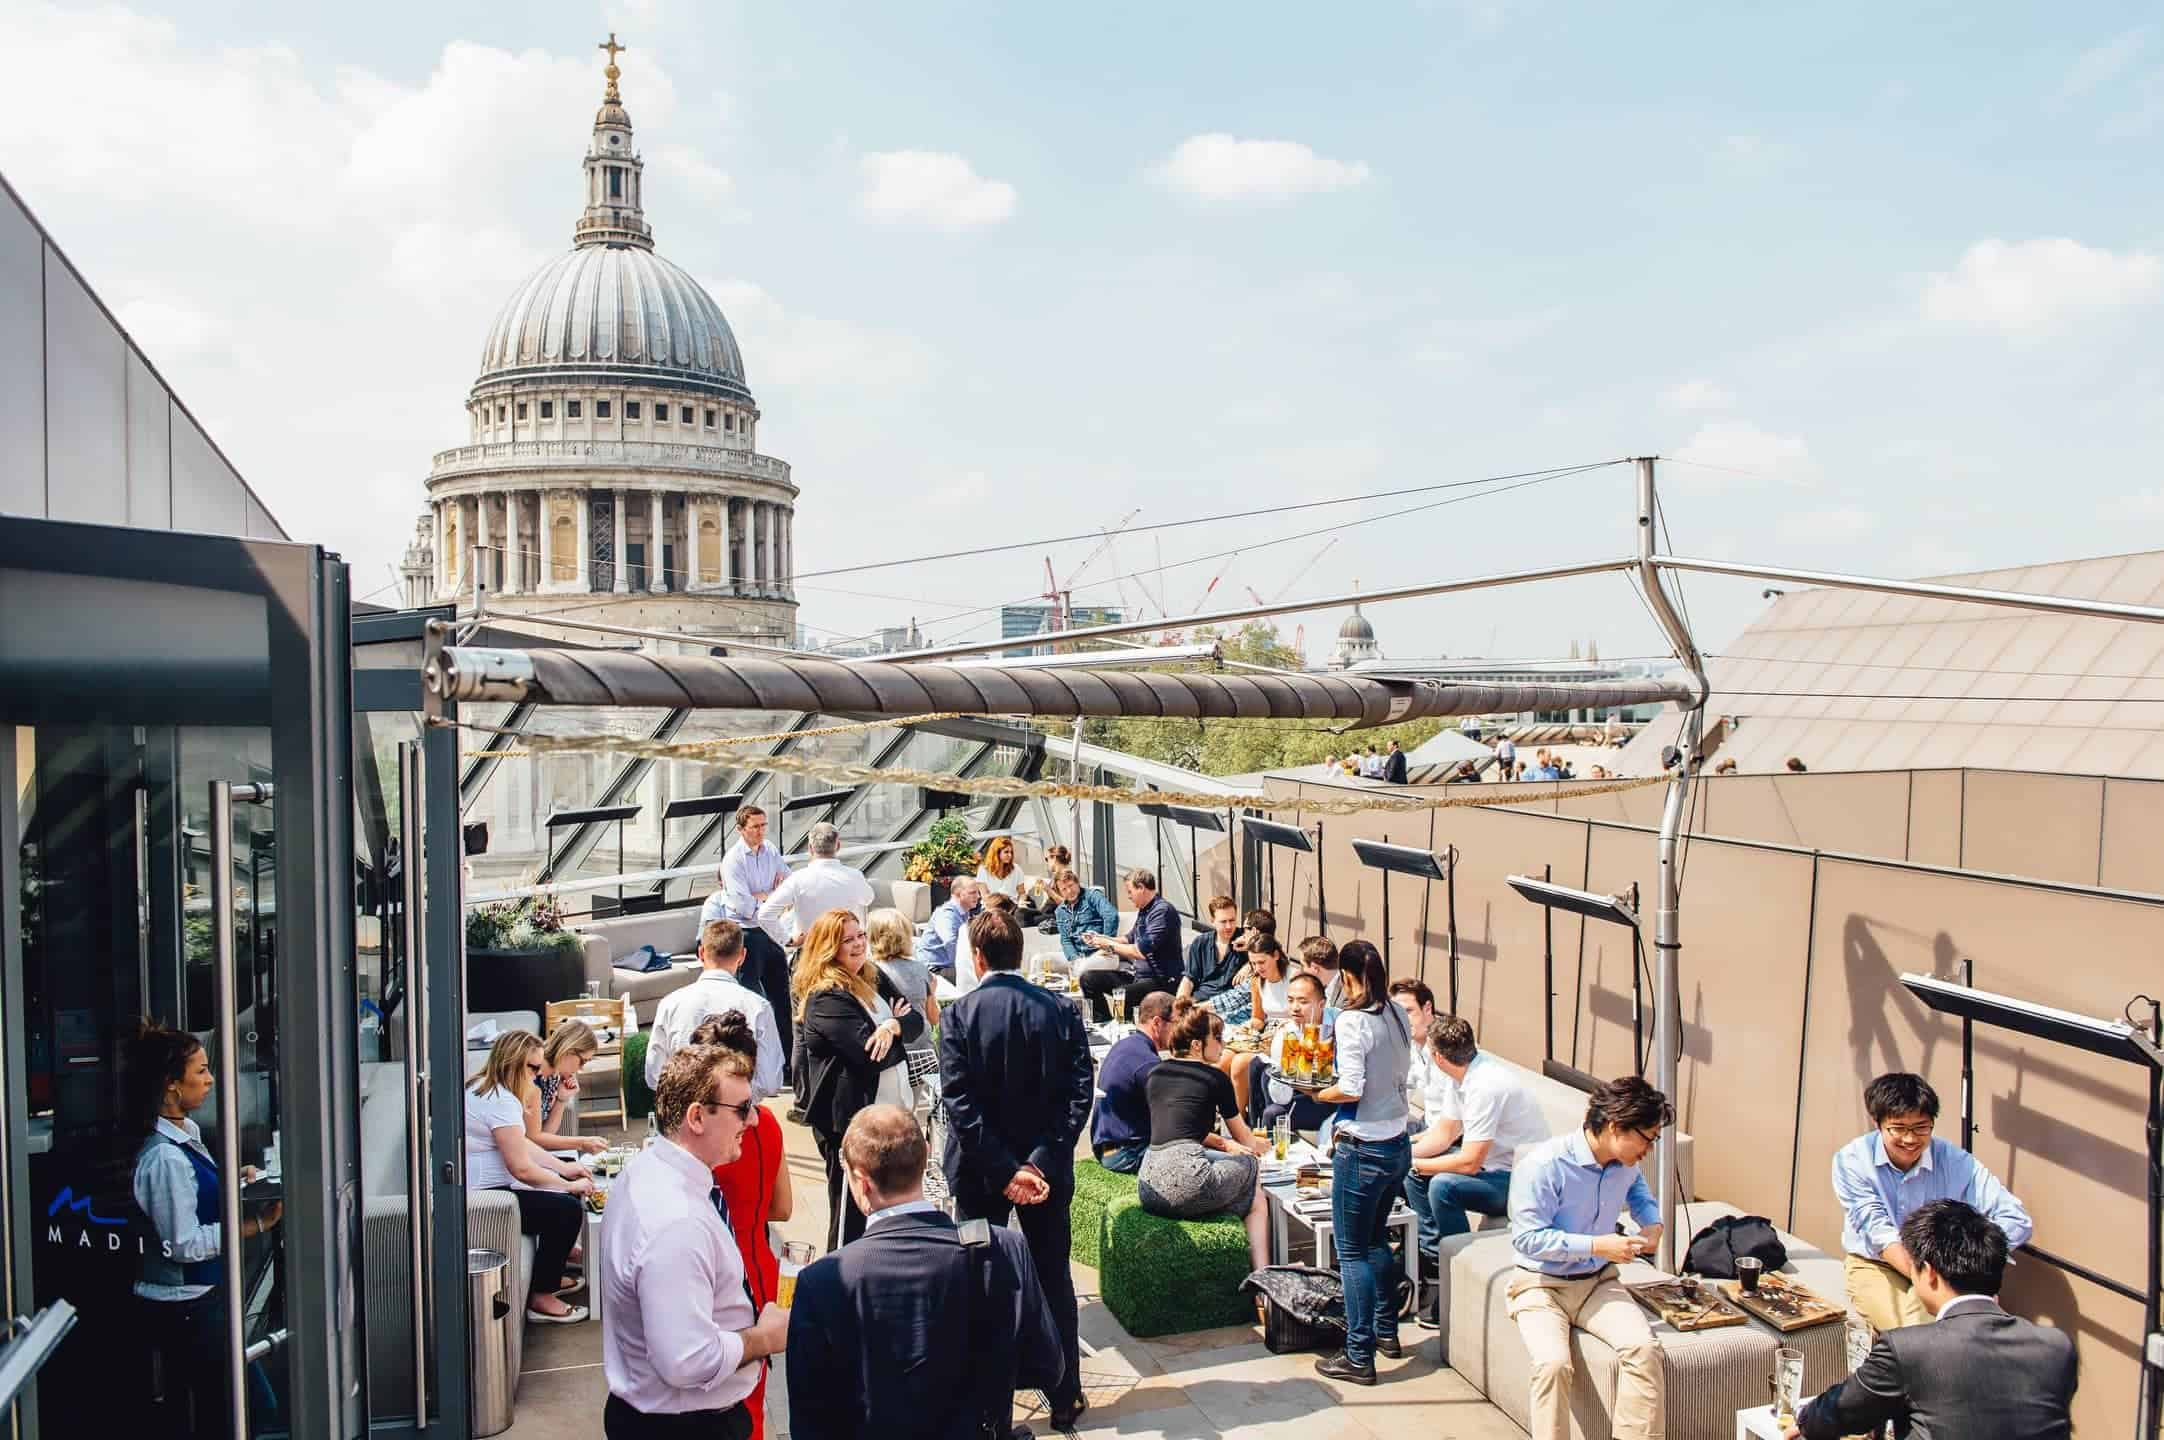 Madisons rooftop bar in London's St Paul's, FashionBite